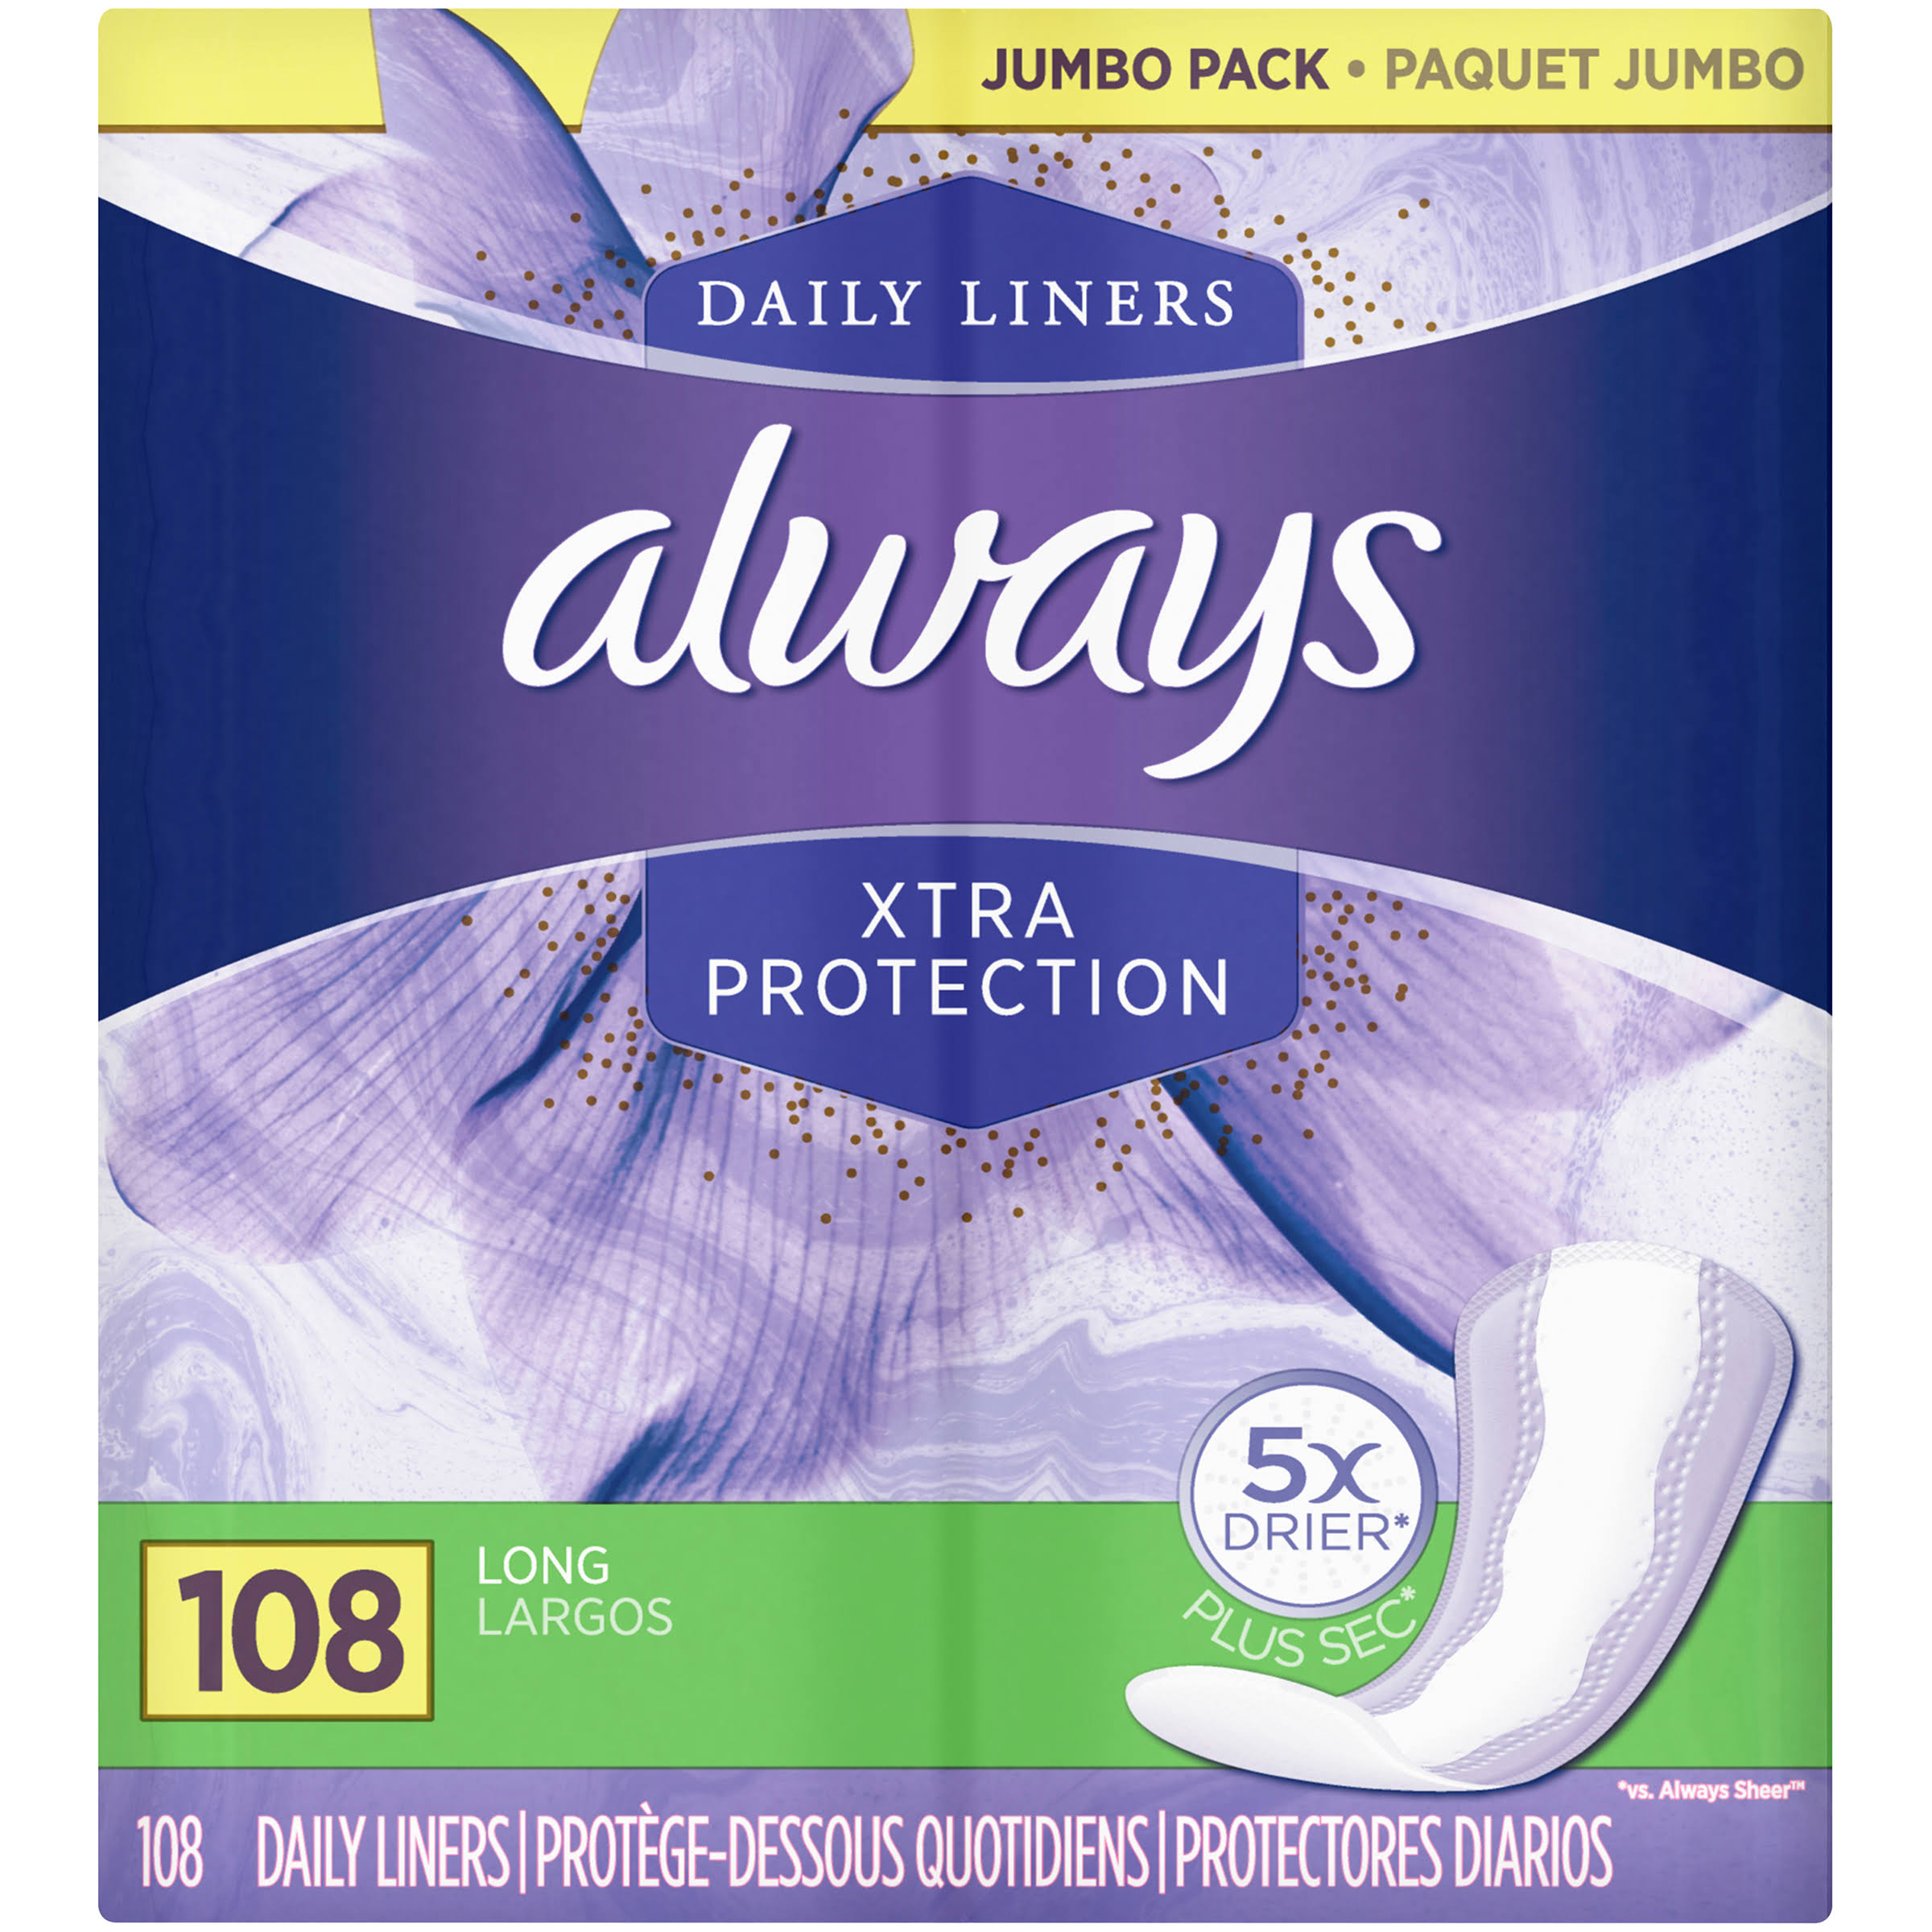 Always Dailies Xtra Protection Long Liners Jumbo Pack - 108 Pack